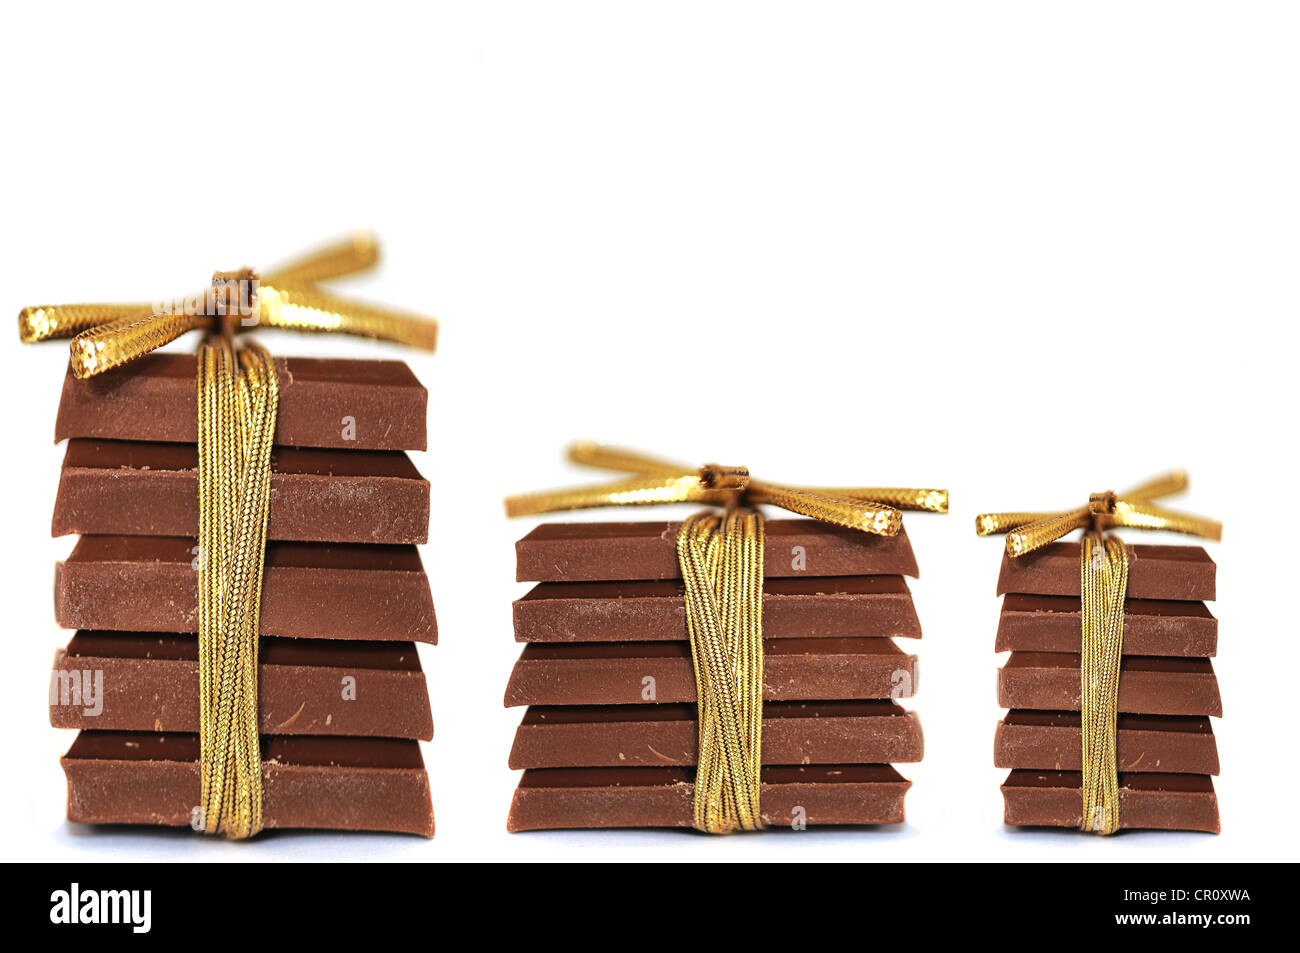 Three stacks of chocolate tied with ribbons - Stock Image